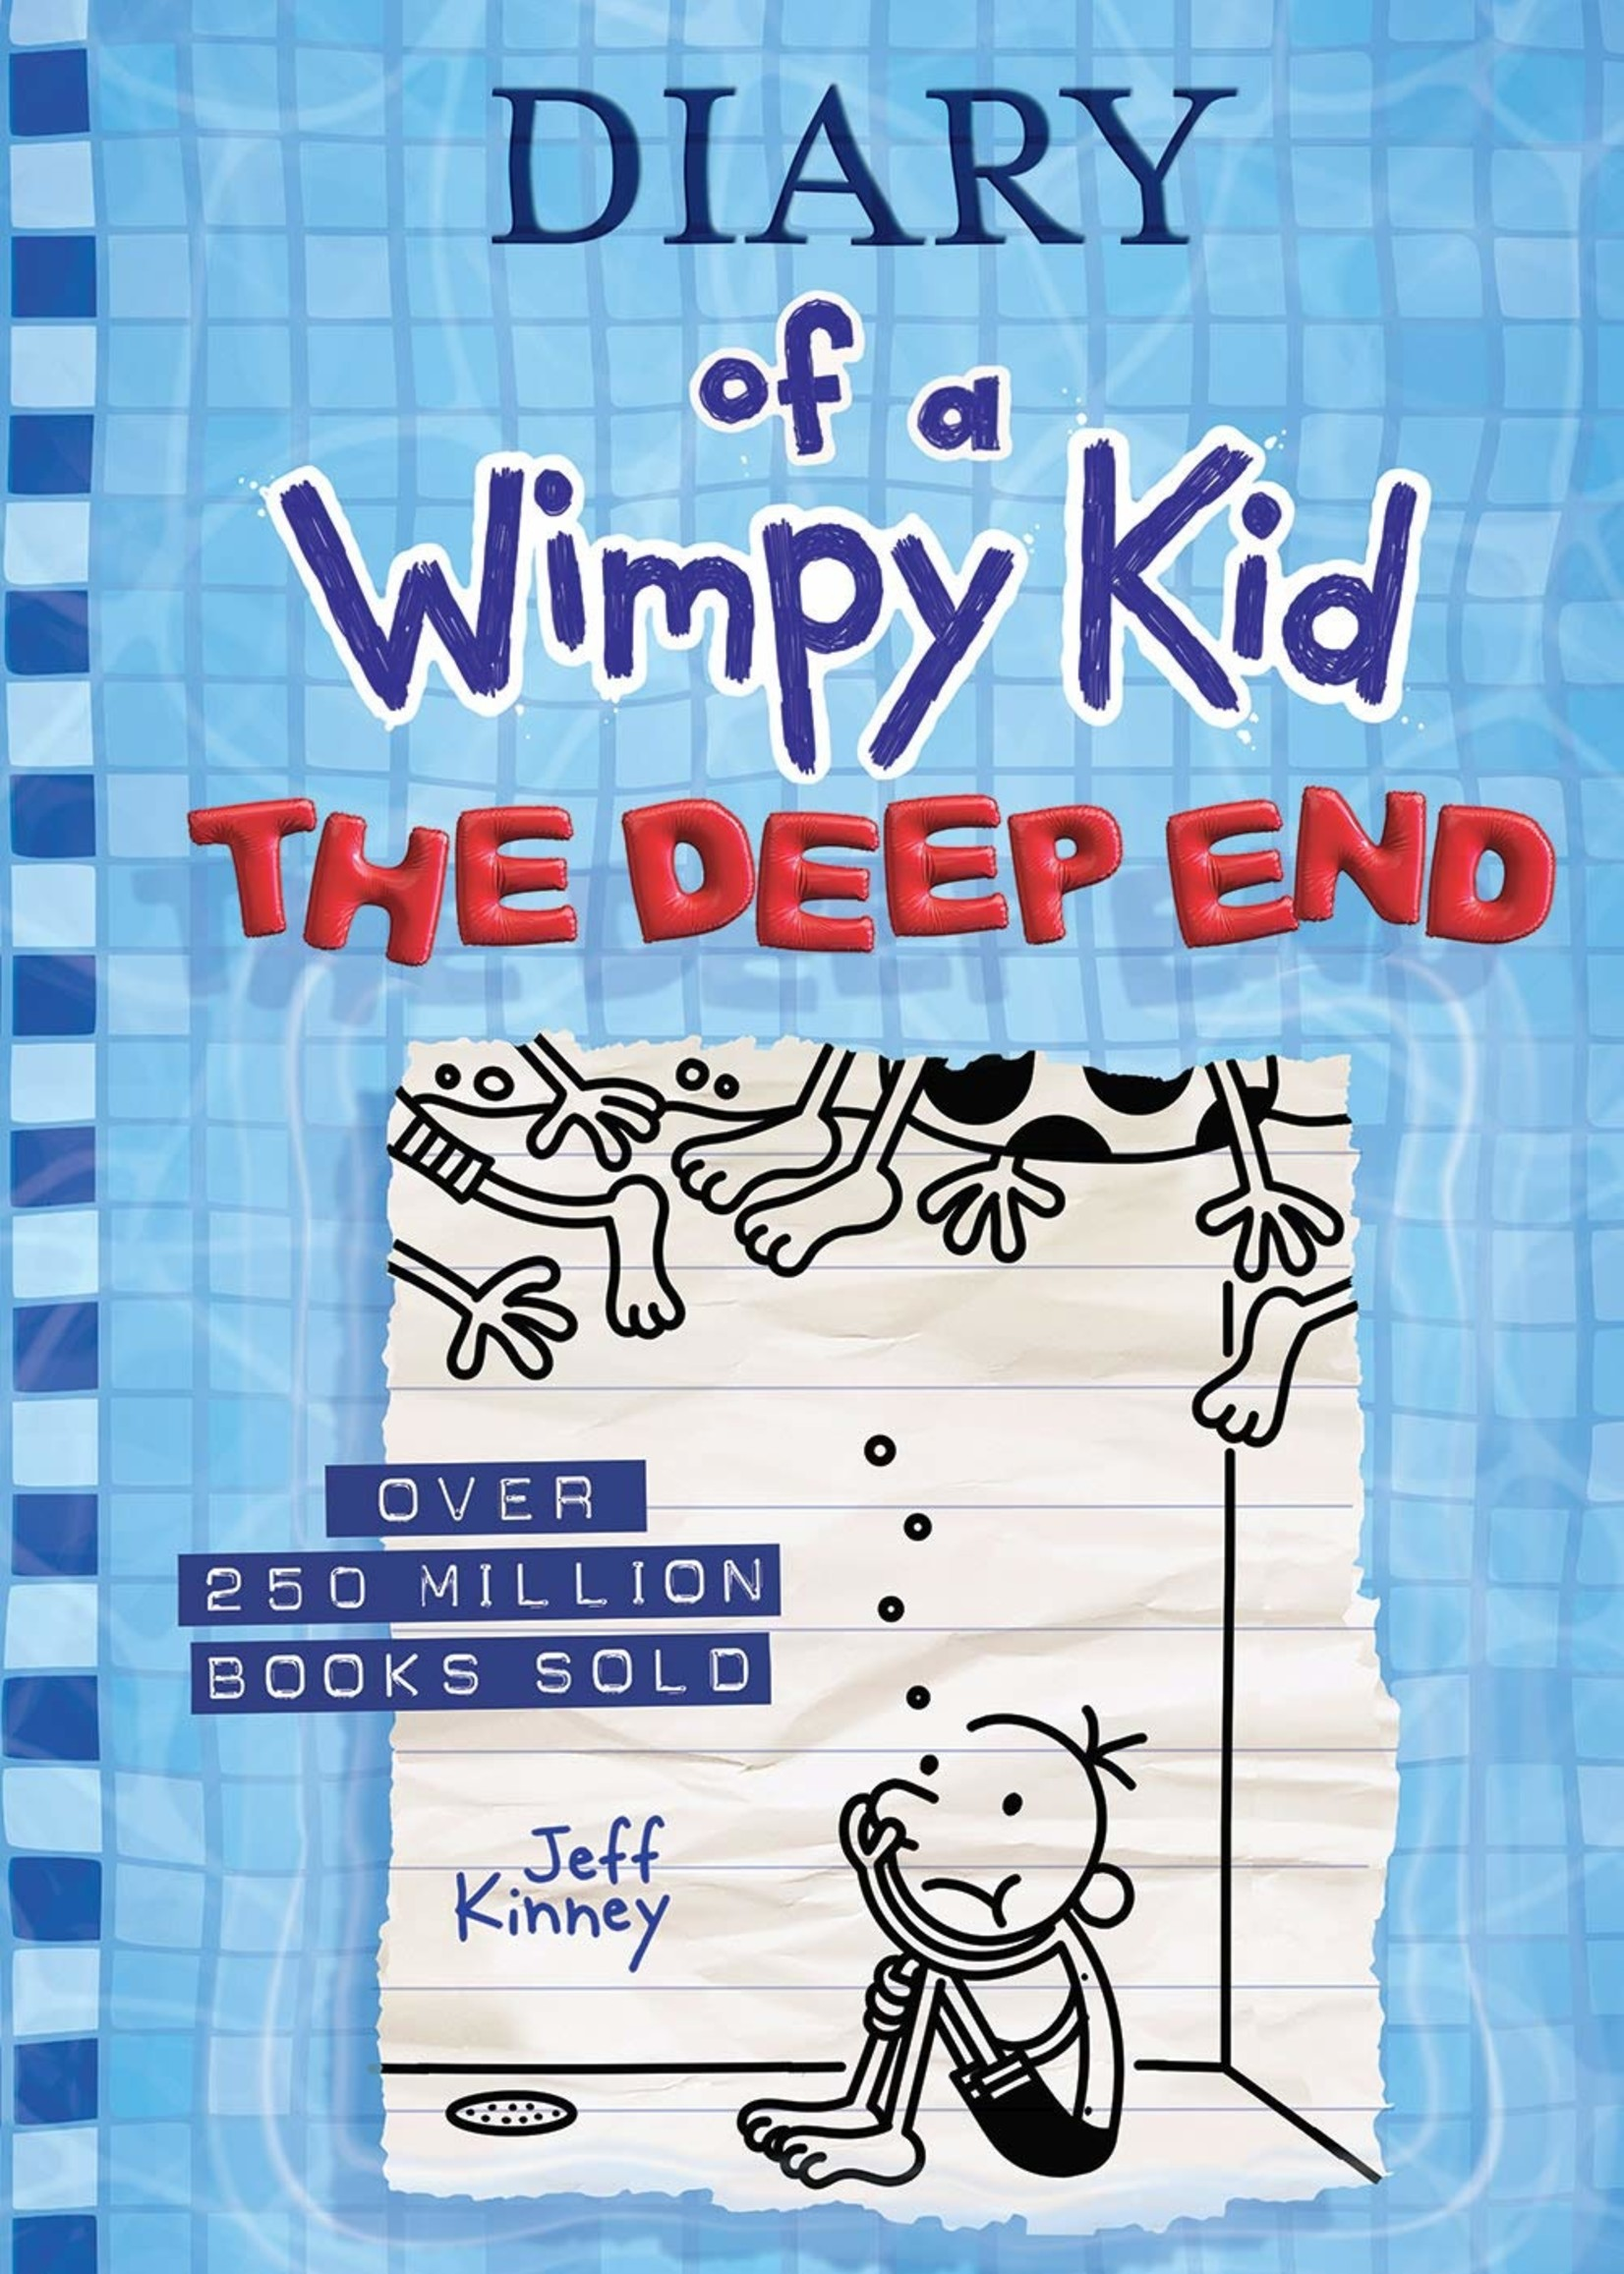 Diary of a Wimpy Kid Illustrated Novel #15, The Deep End - Hardcover